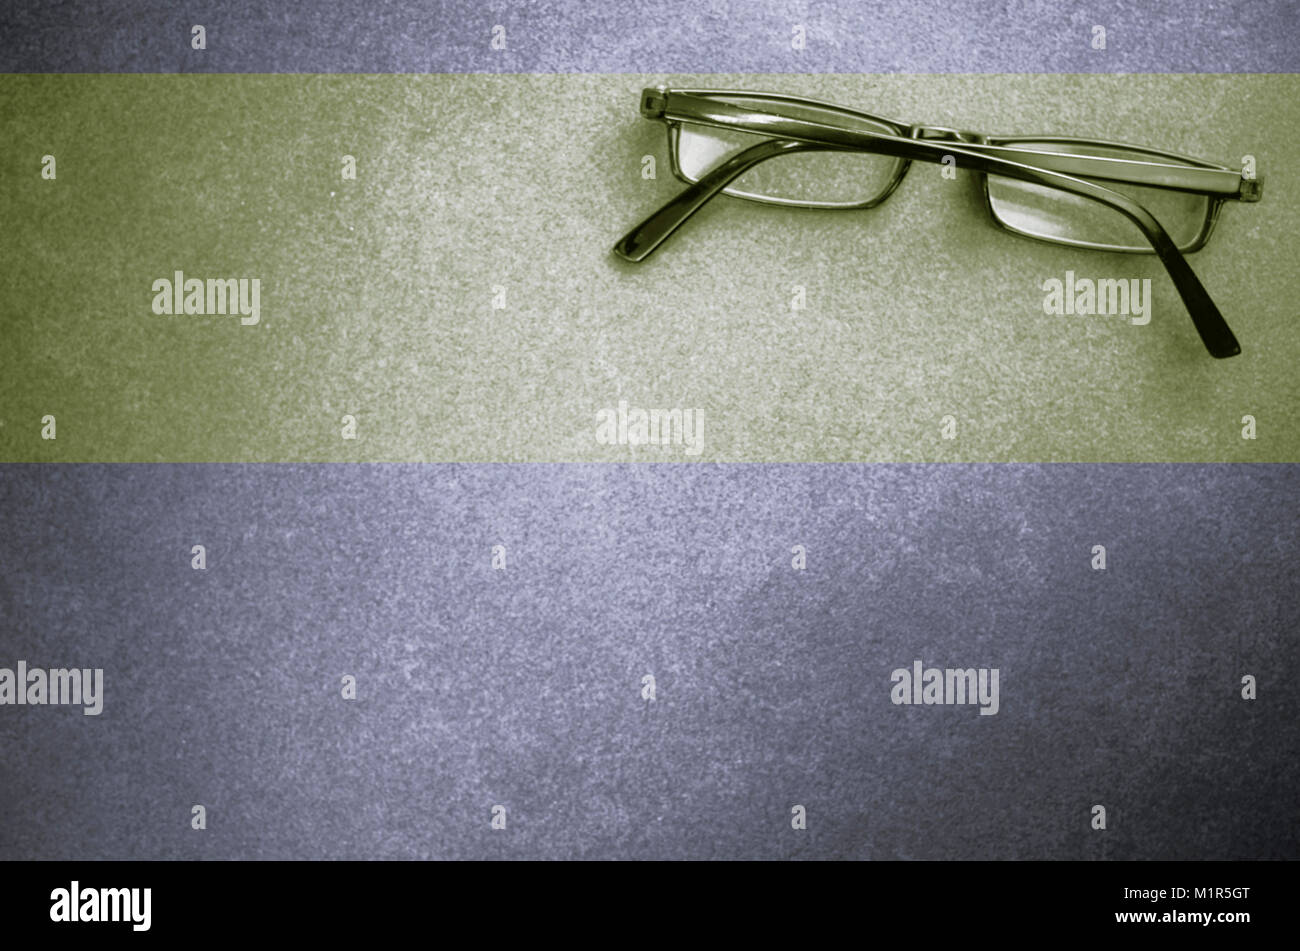 closed eyeglasses on a dark stone surface - top view - Stock Image